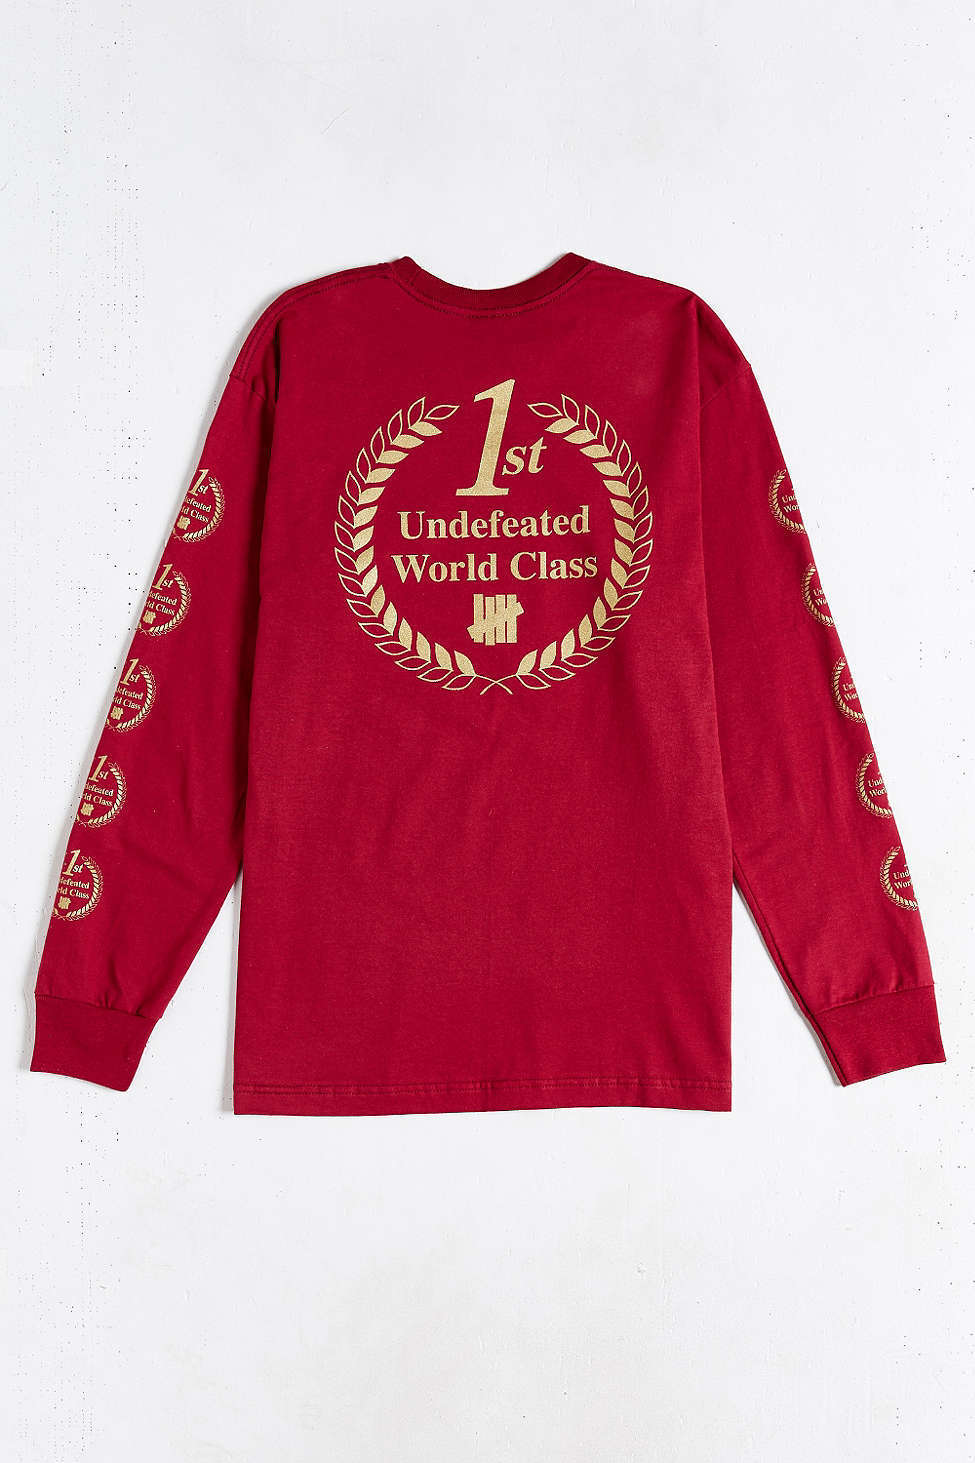 Undefeated 1st World Class L S Tee Shirt Large Dark Red Burgundy golden Print DS